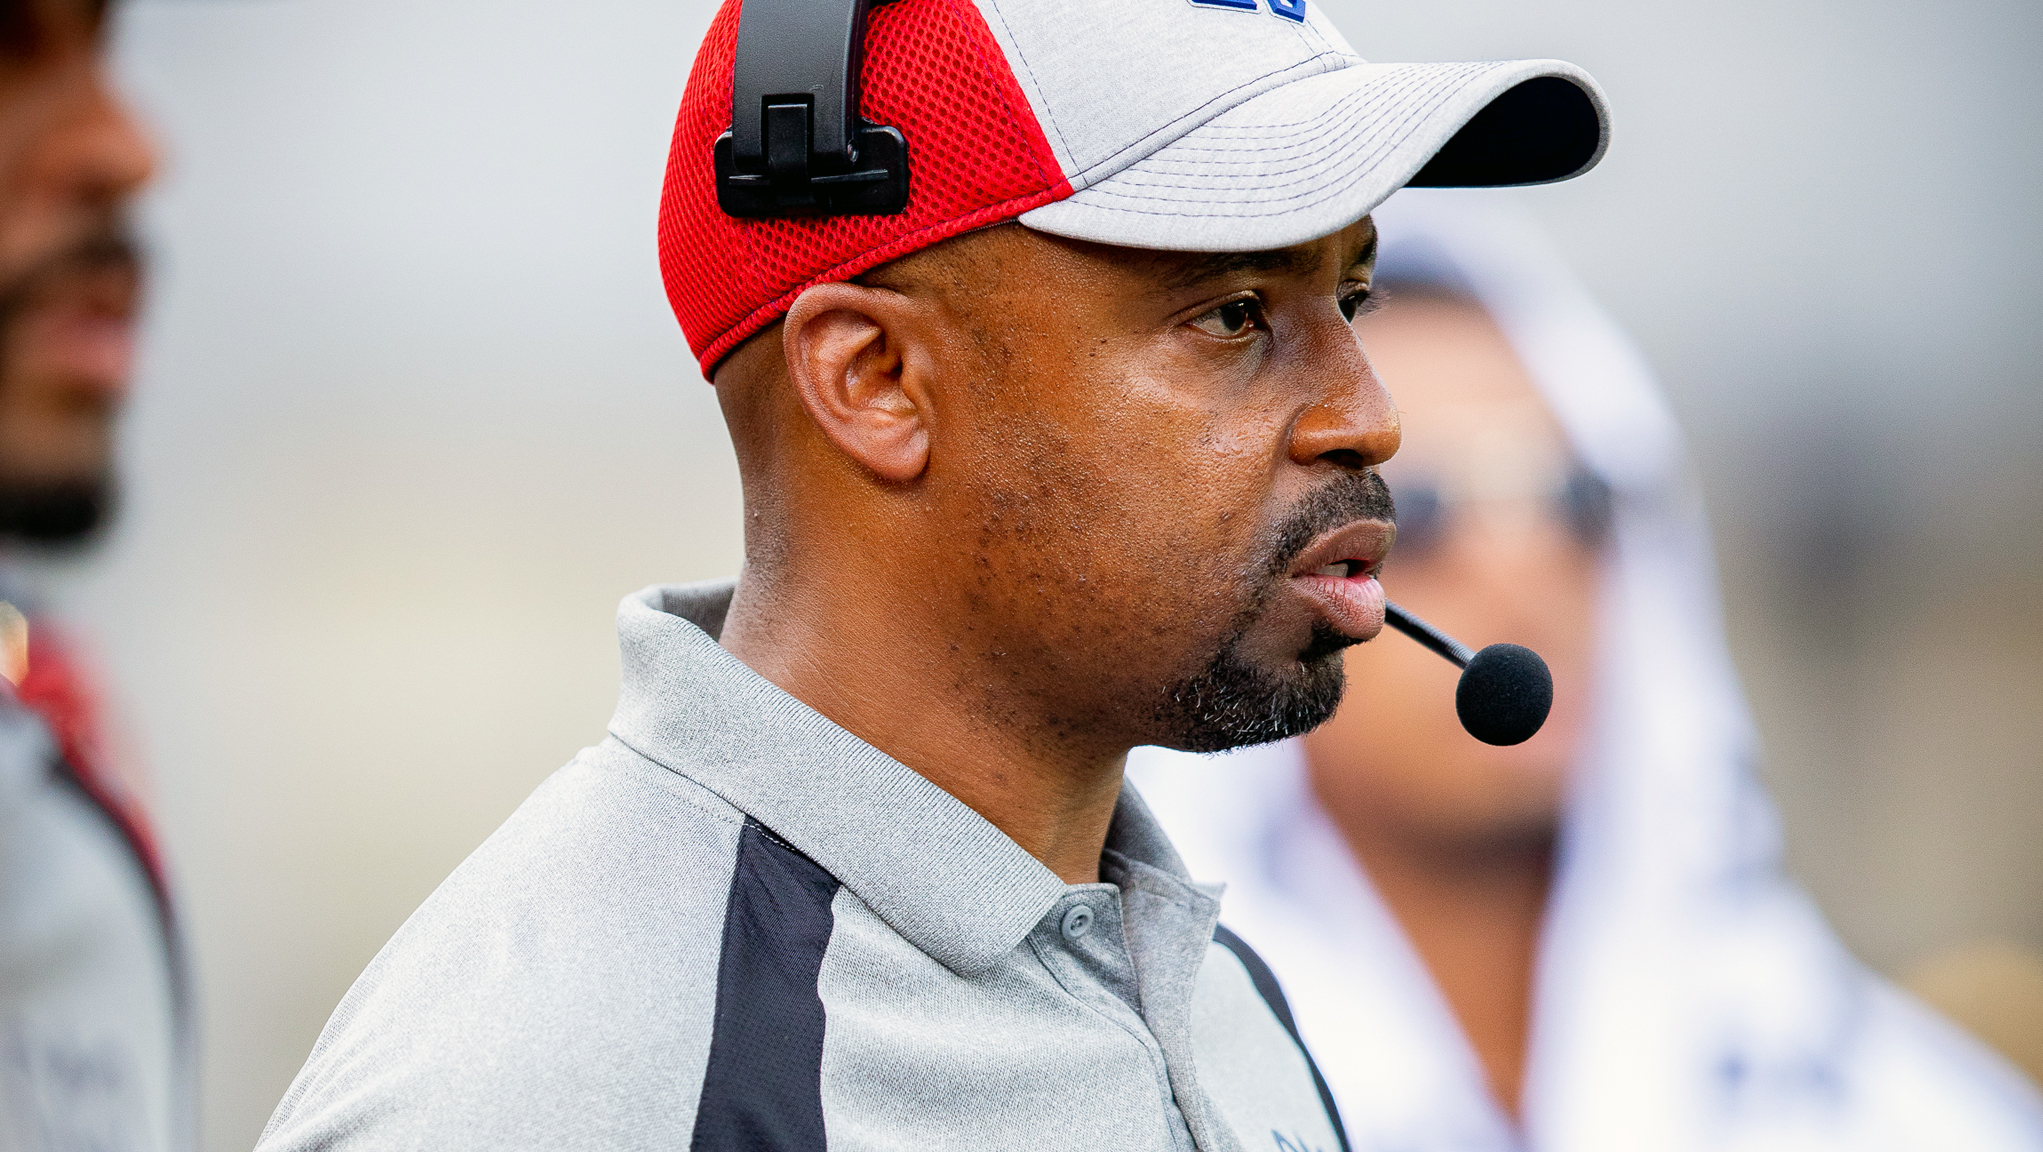 Jones on Als' Comeback: 'They have fight in them' - CFL.ca